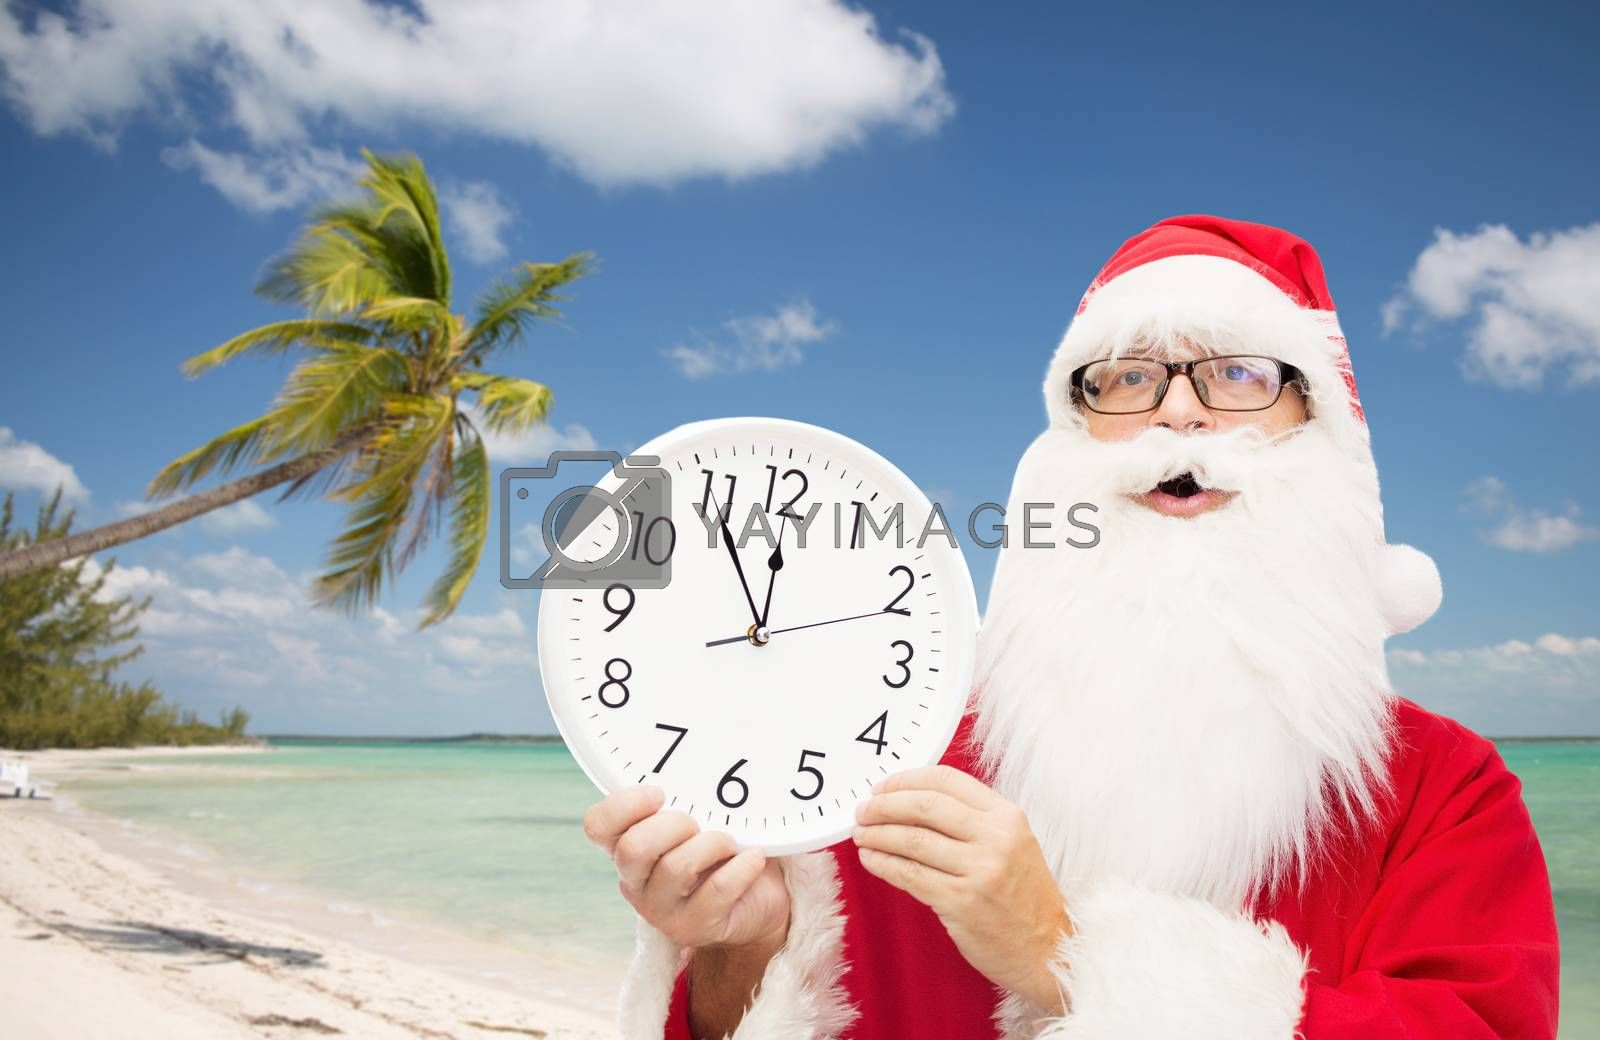 christmas, holidays, travel and people concept - man in costume of santa claus with clock showing twelve over tropical beach background